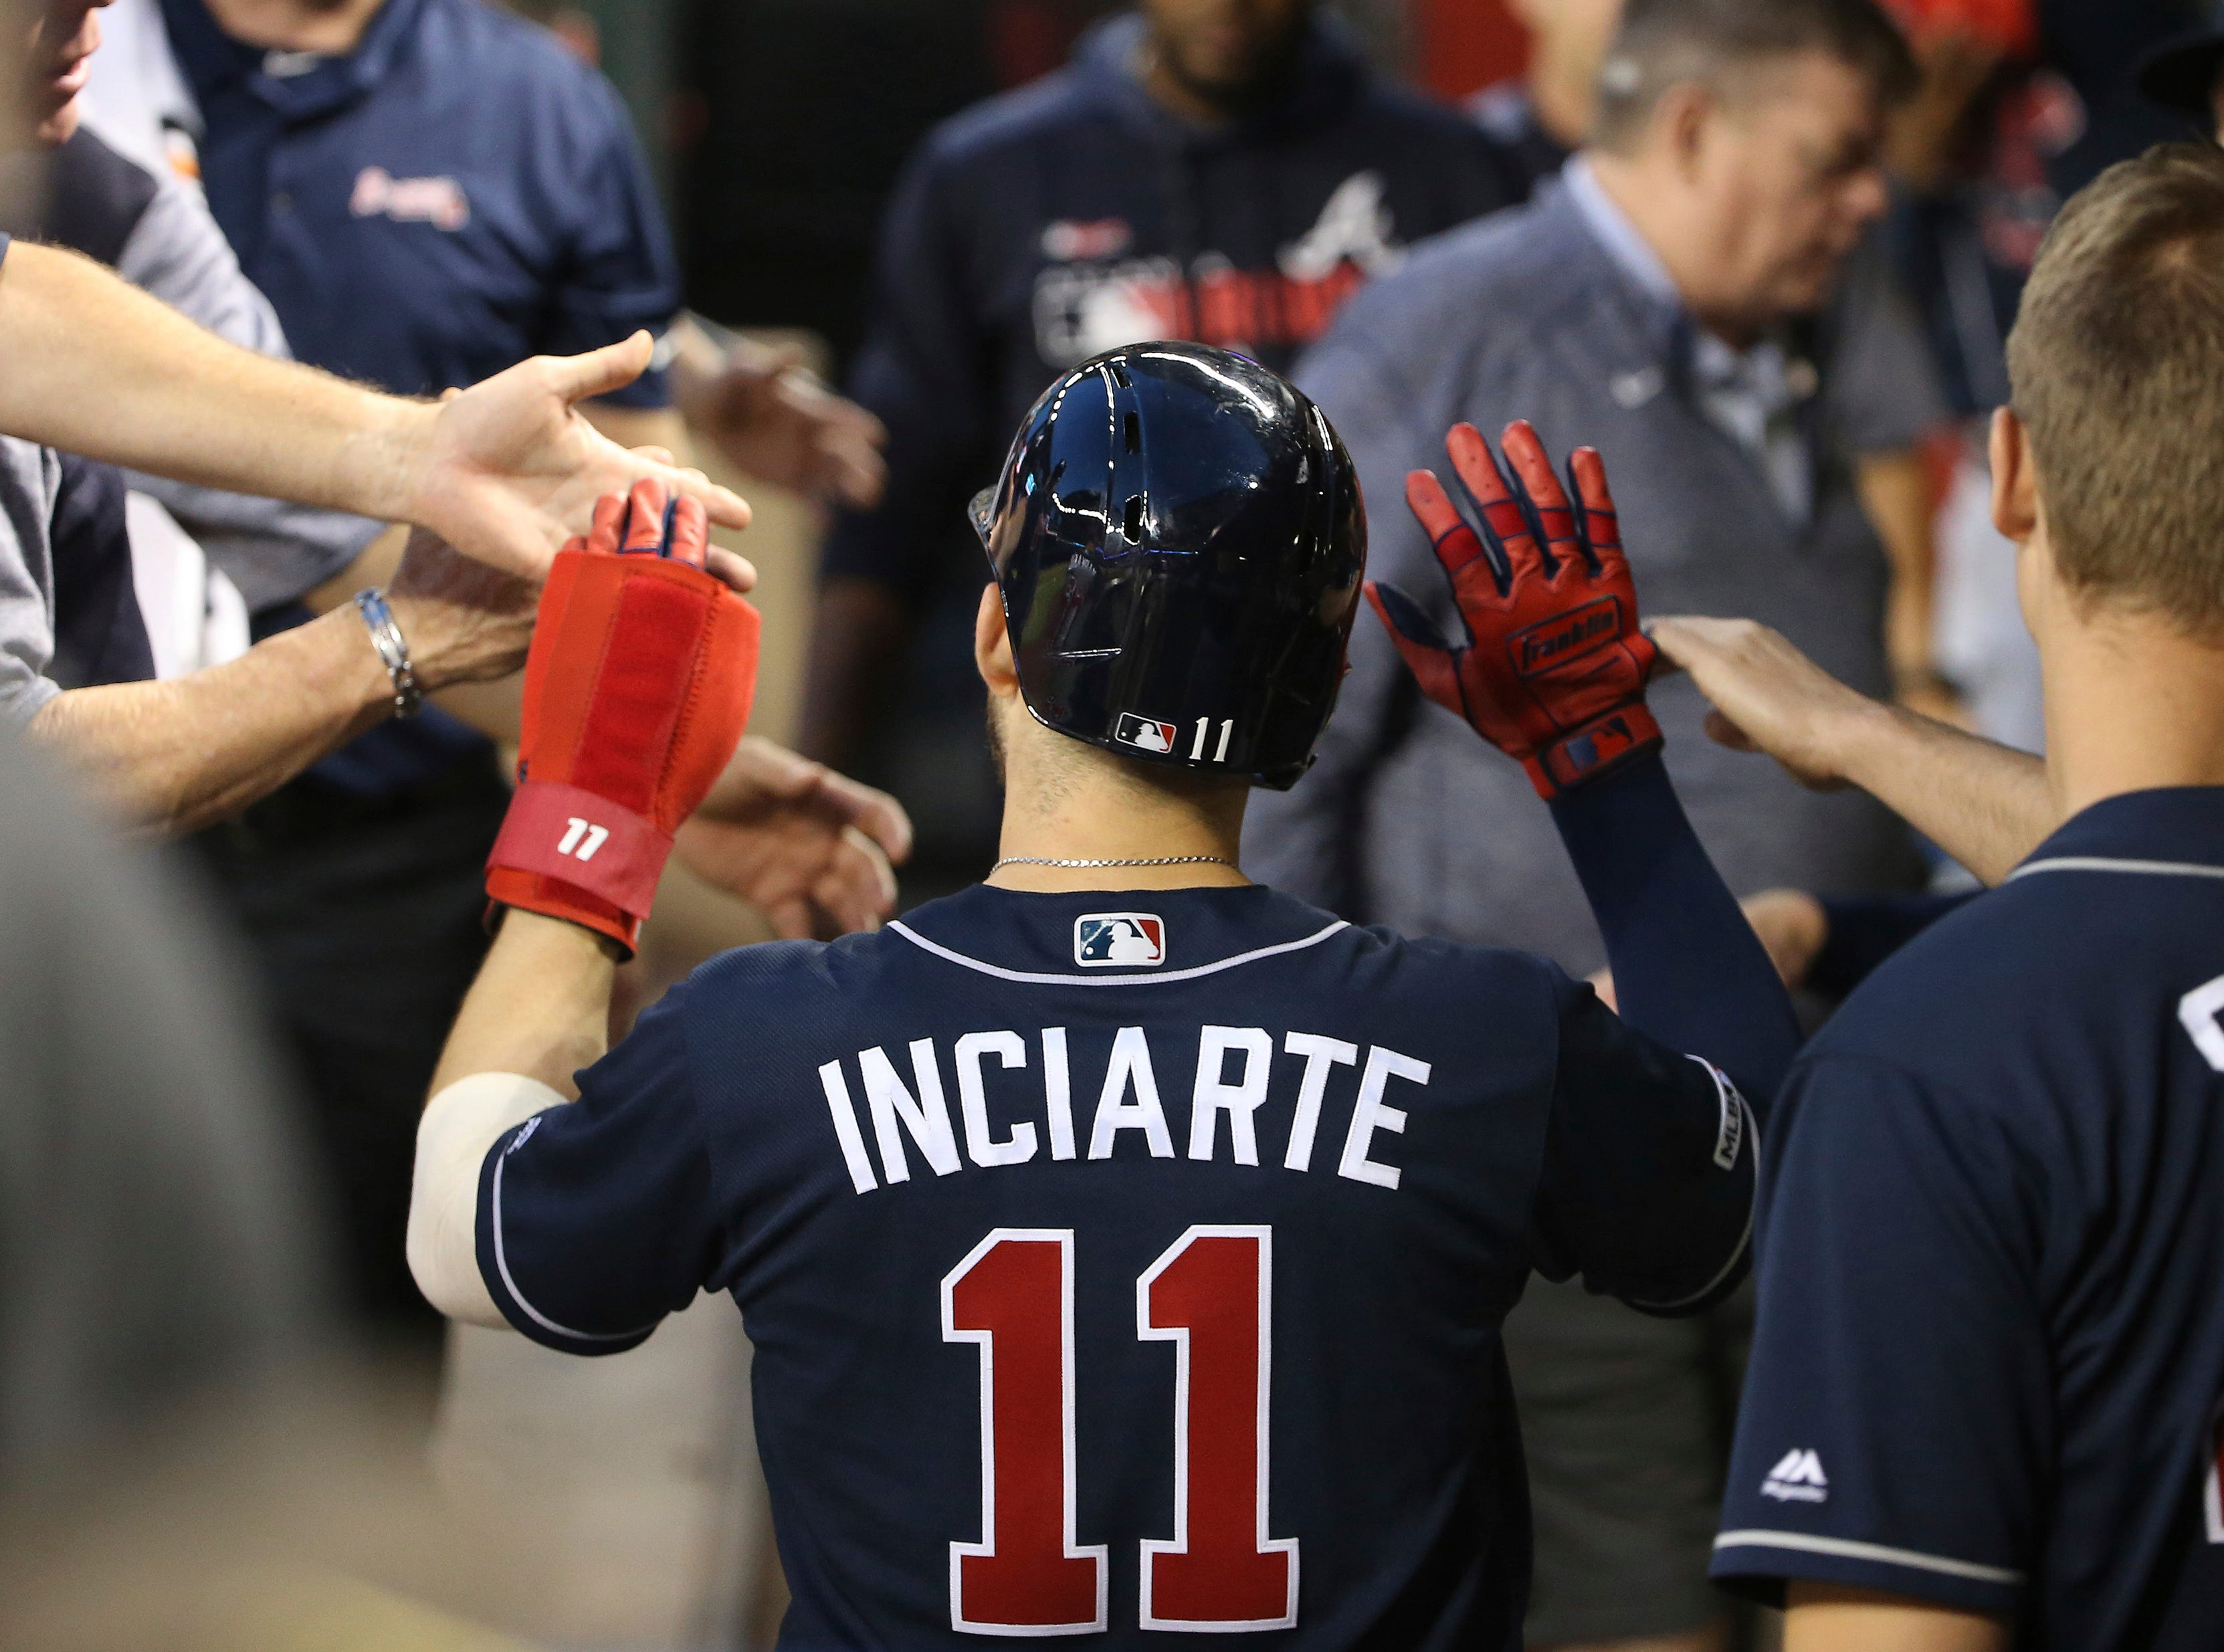 Atlanta Braves' Ender Inciarte (11) celebrates after scoring against the Arizona Diamondbacks during the third inning of a baseball game Thursday, May 9, 2019, in Phoenix. (AP Photo/Ross D. Franklin)